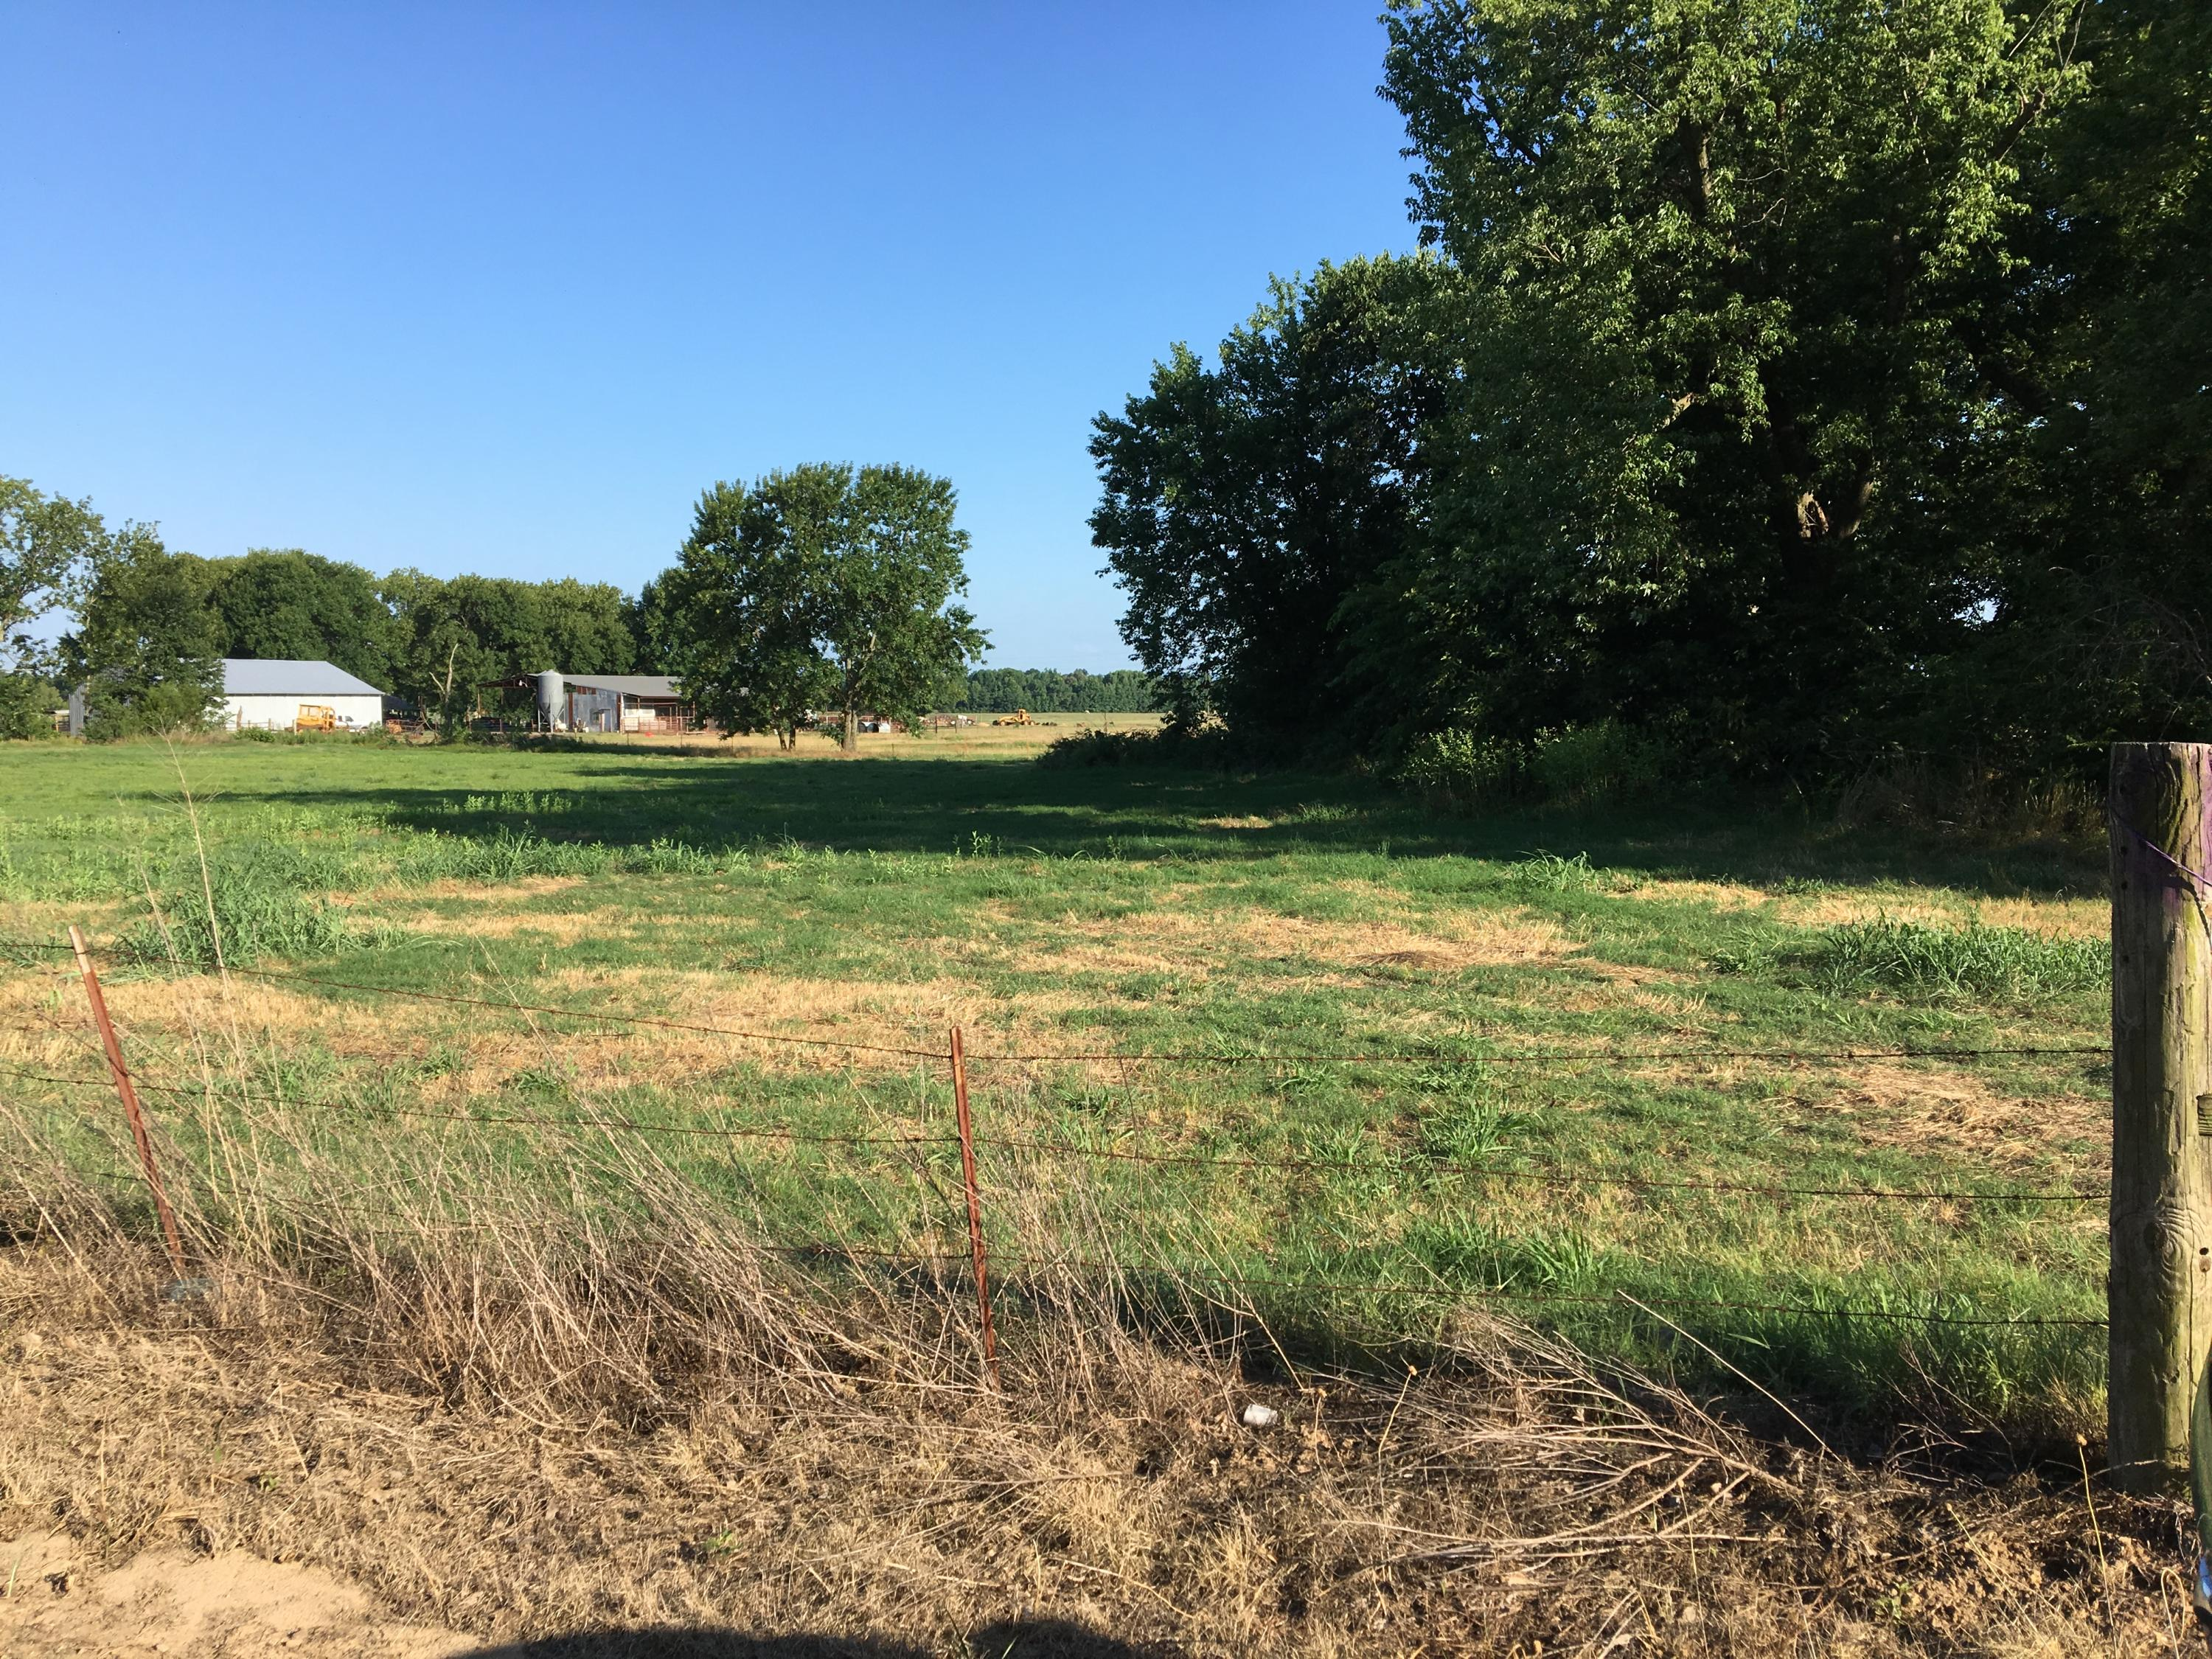 Large photo 1 of land for sale at  SE of Main & Railroad St. , Coal Hill, AR, listed by Century 21 Glover Town and Country Realty